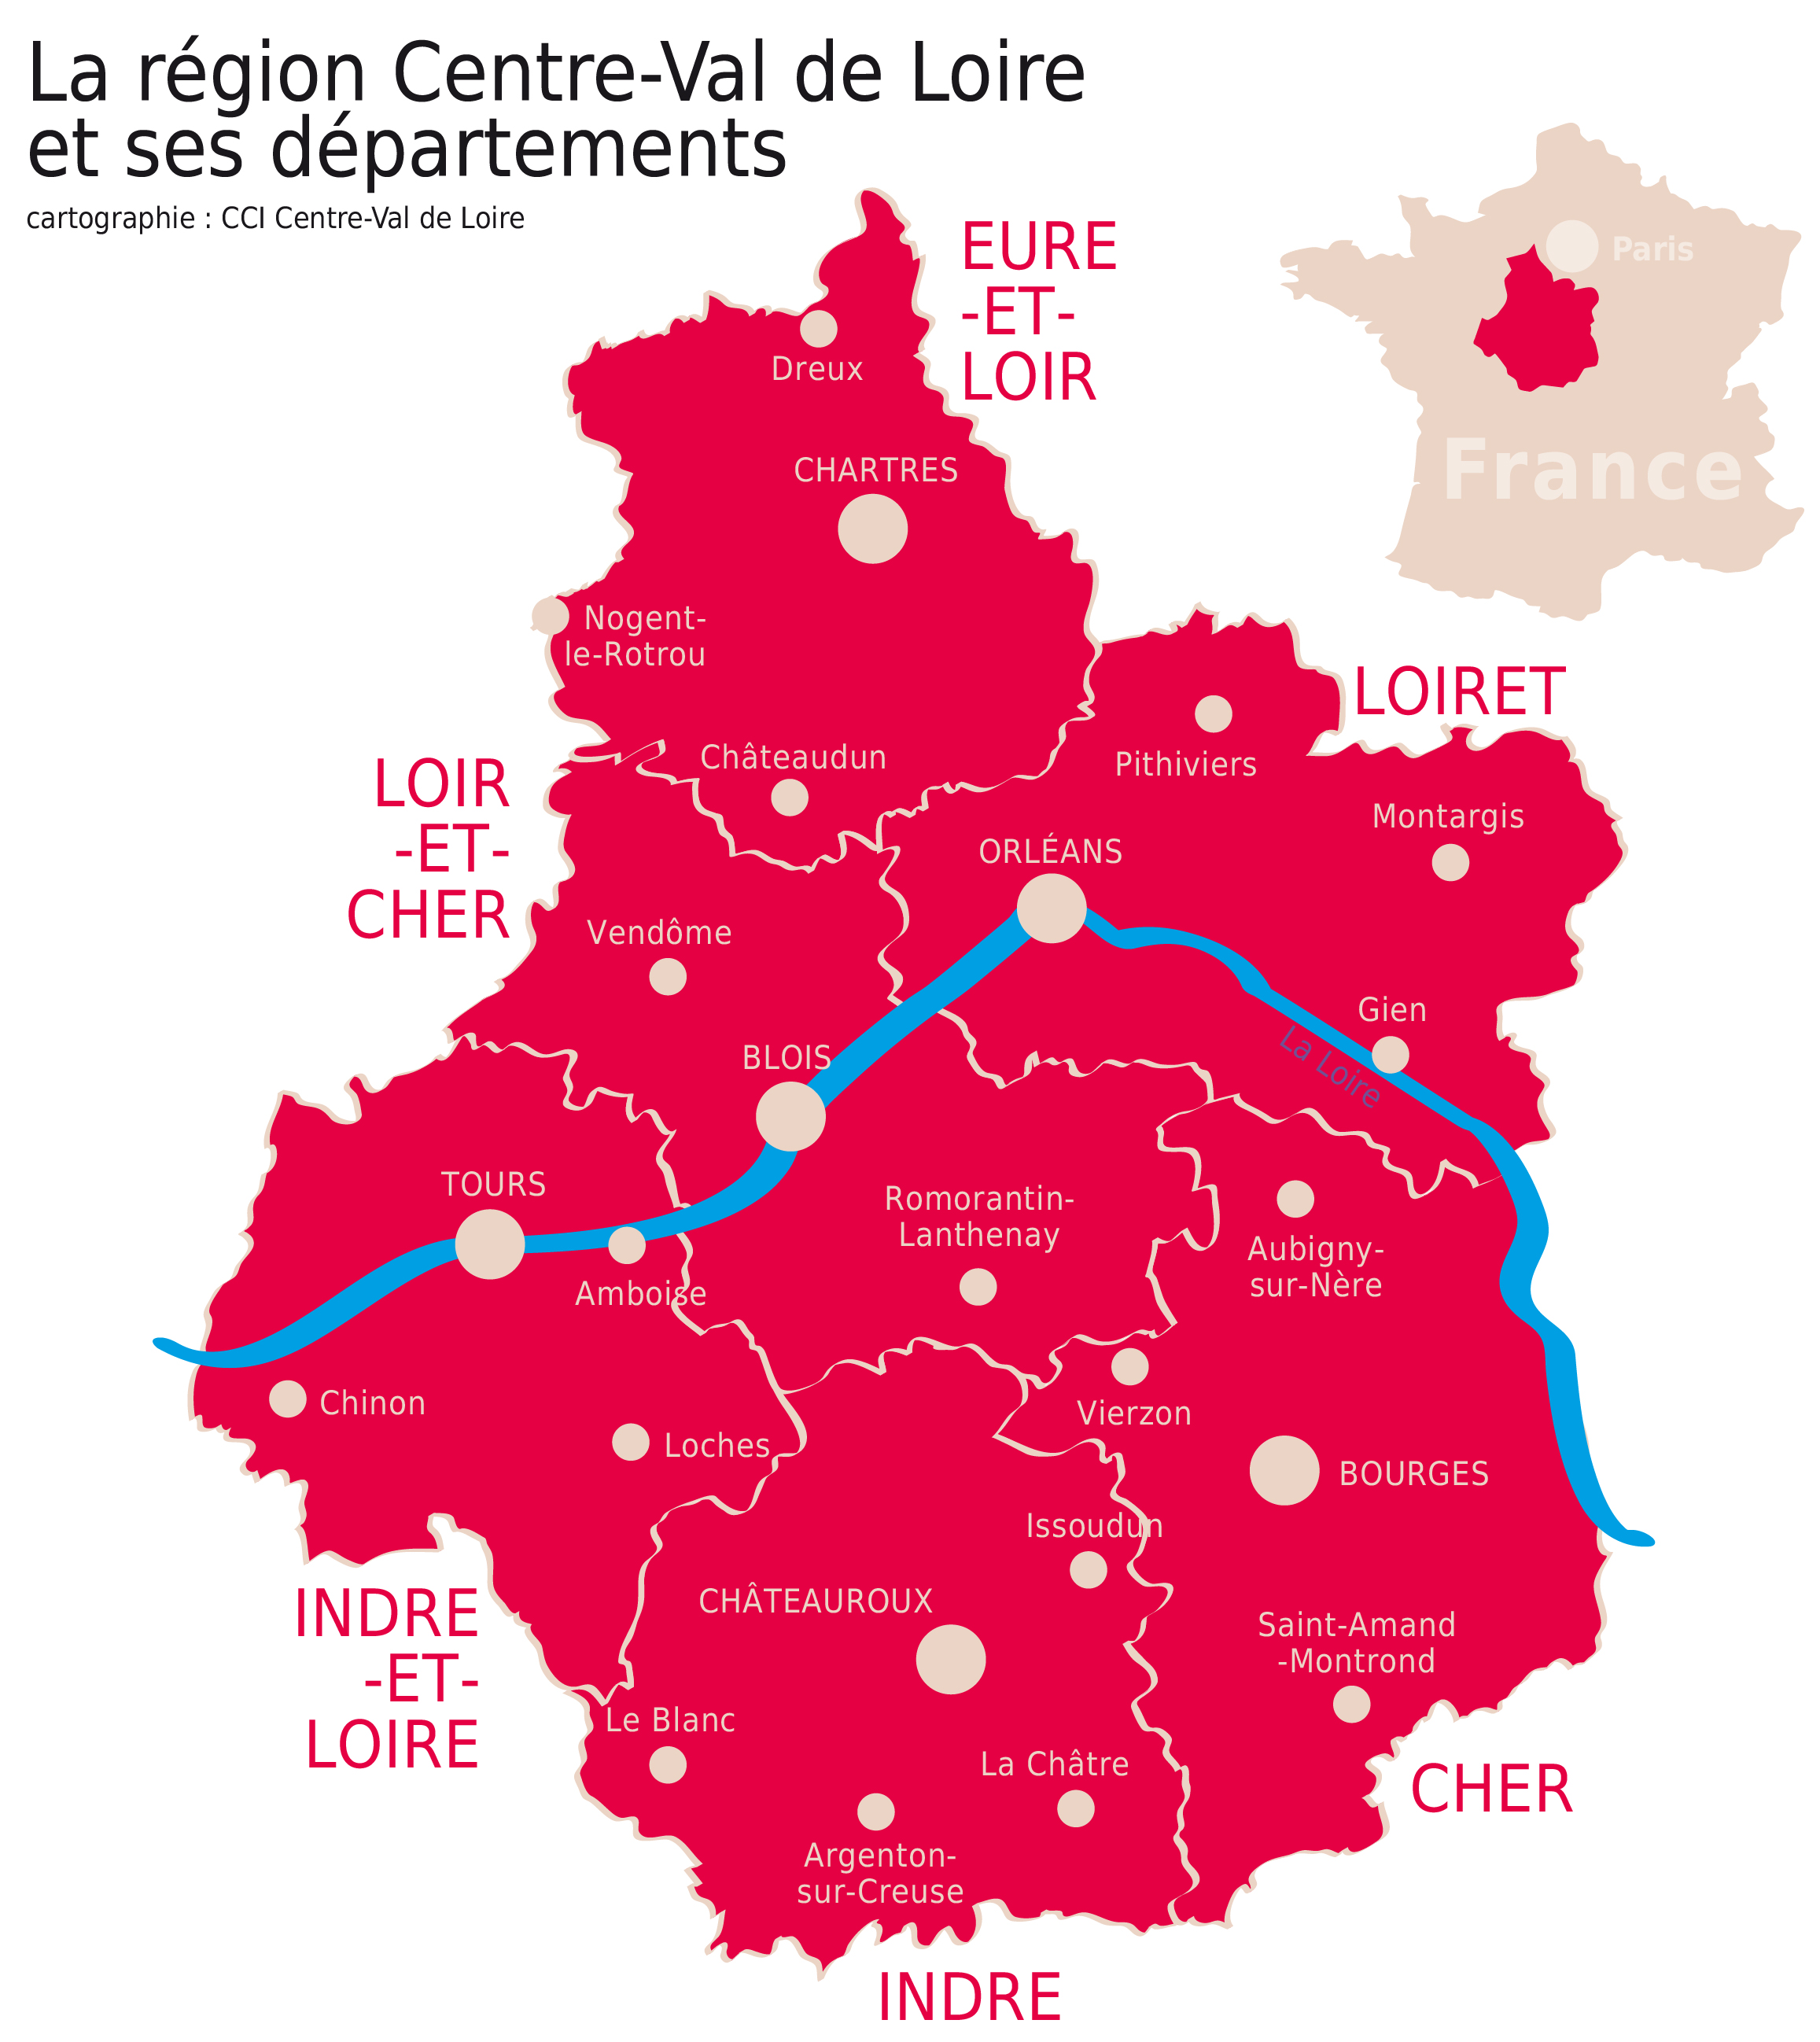 carte-de-la-region-centre